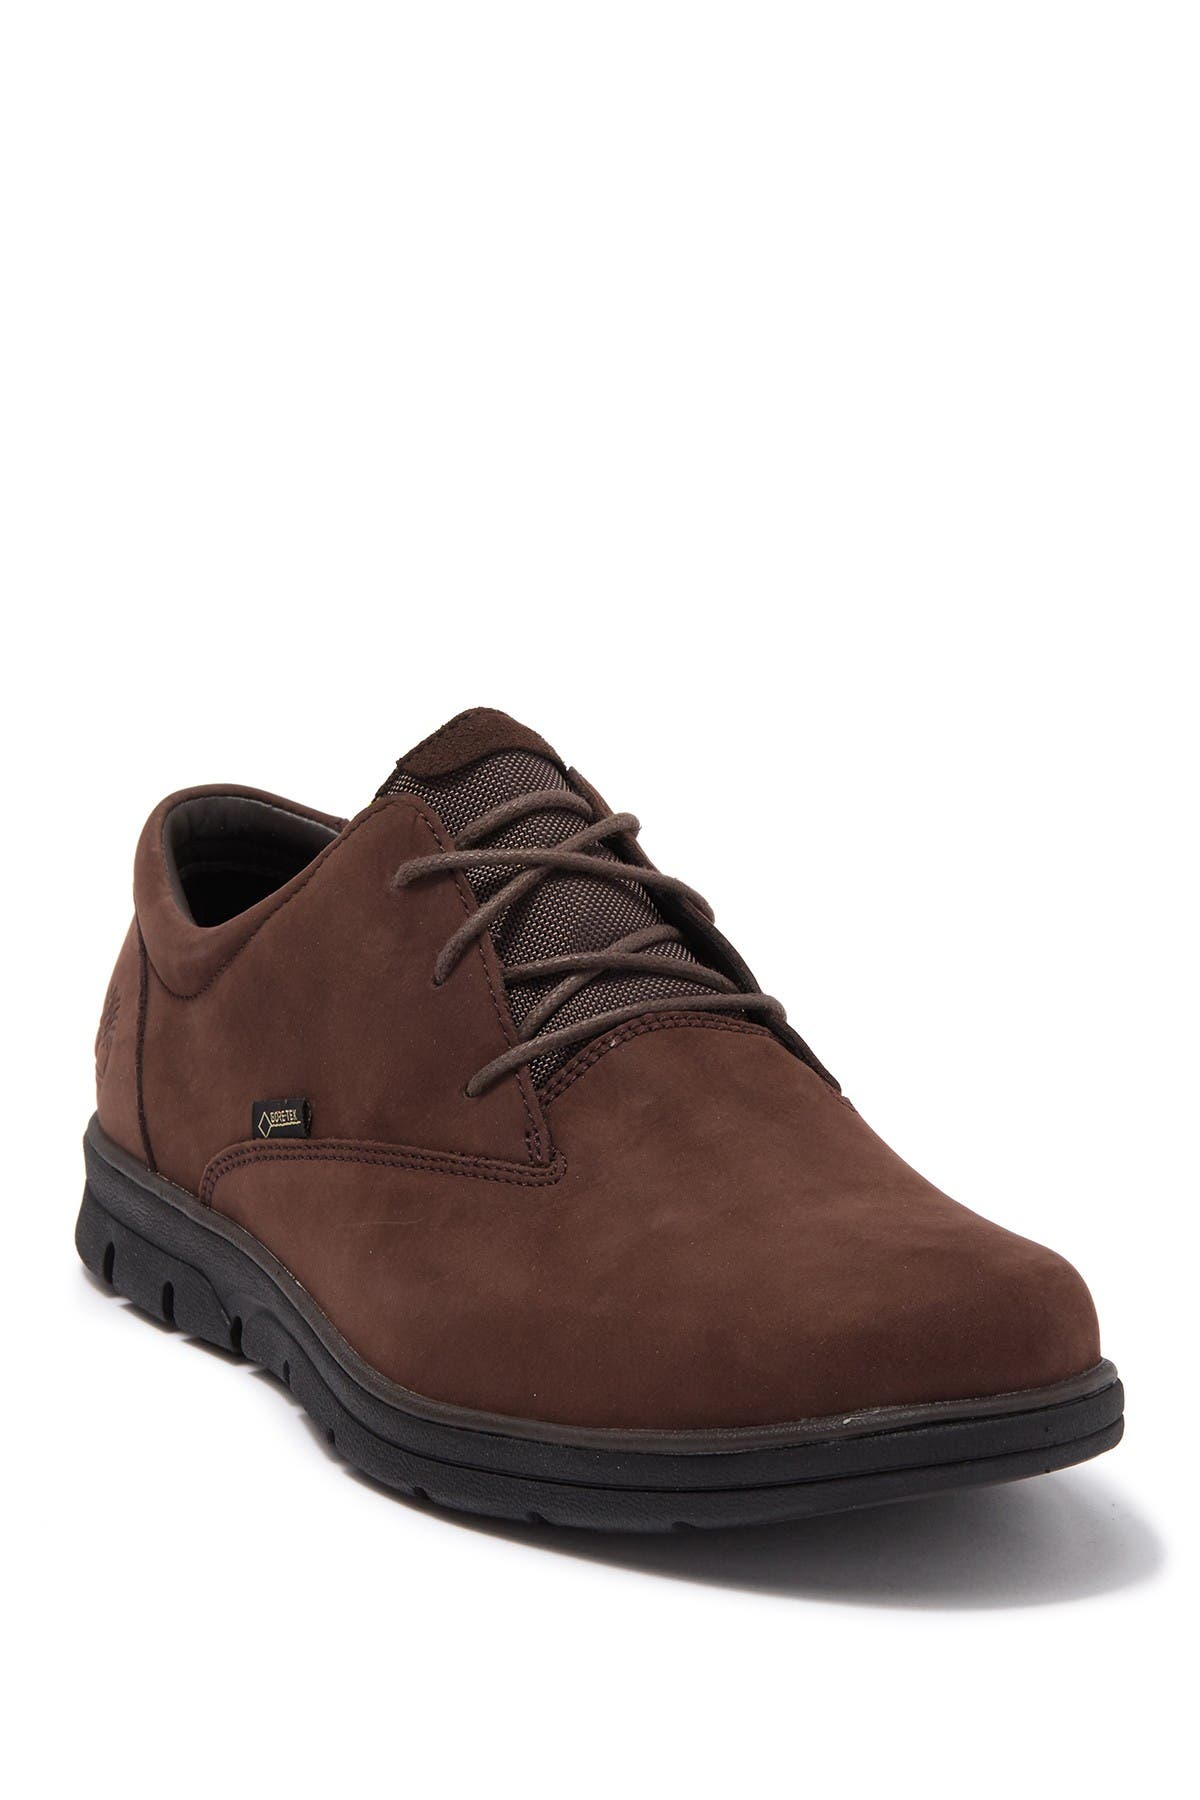 Image of Timberland Bradstreet Casual Derby